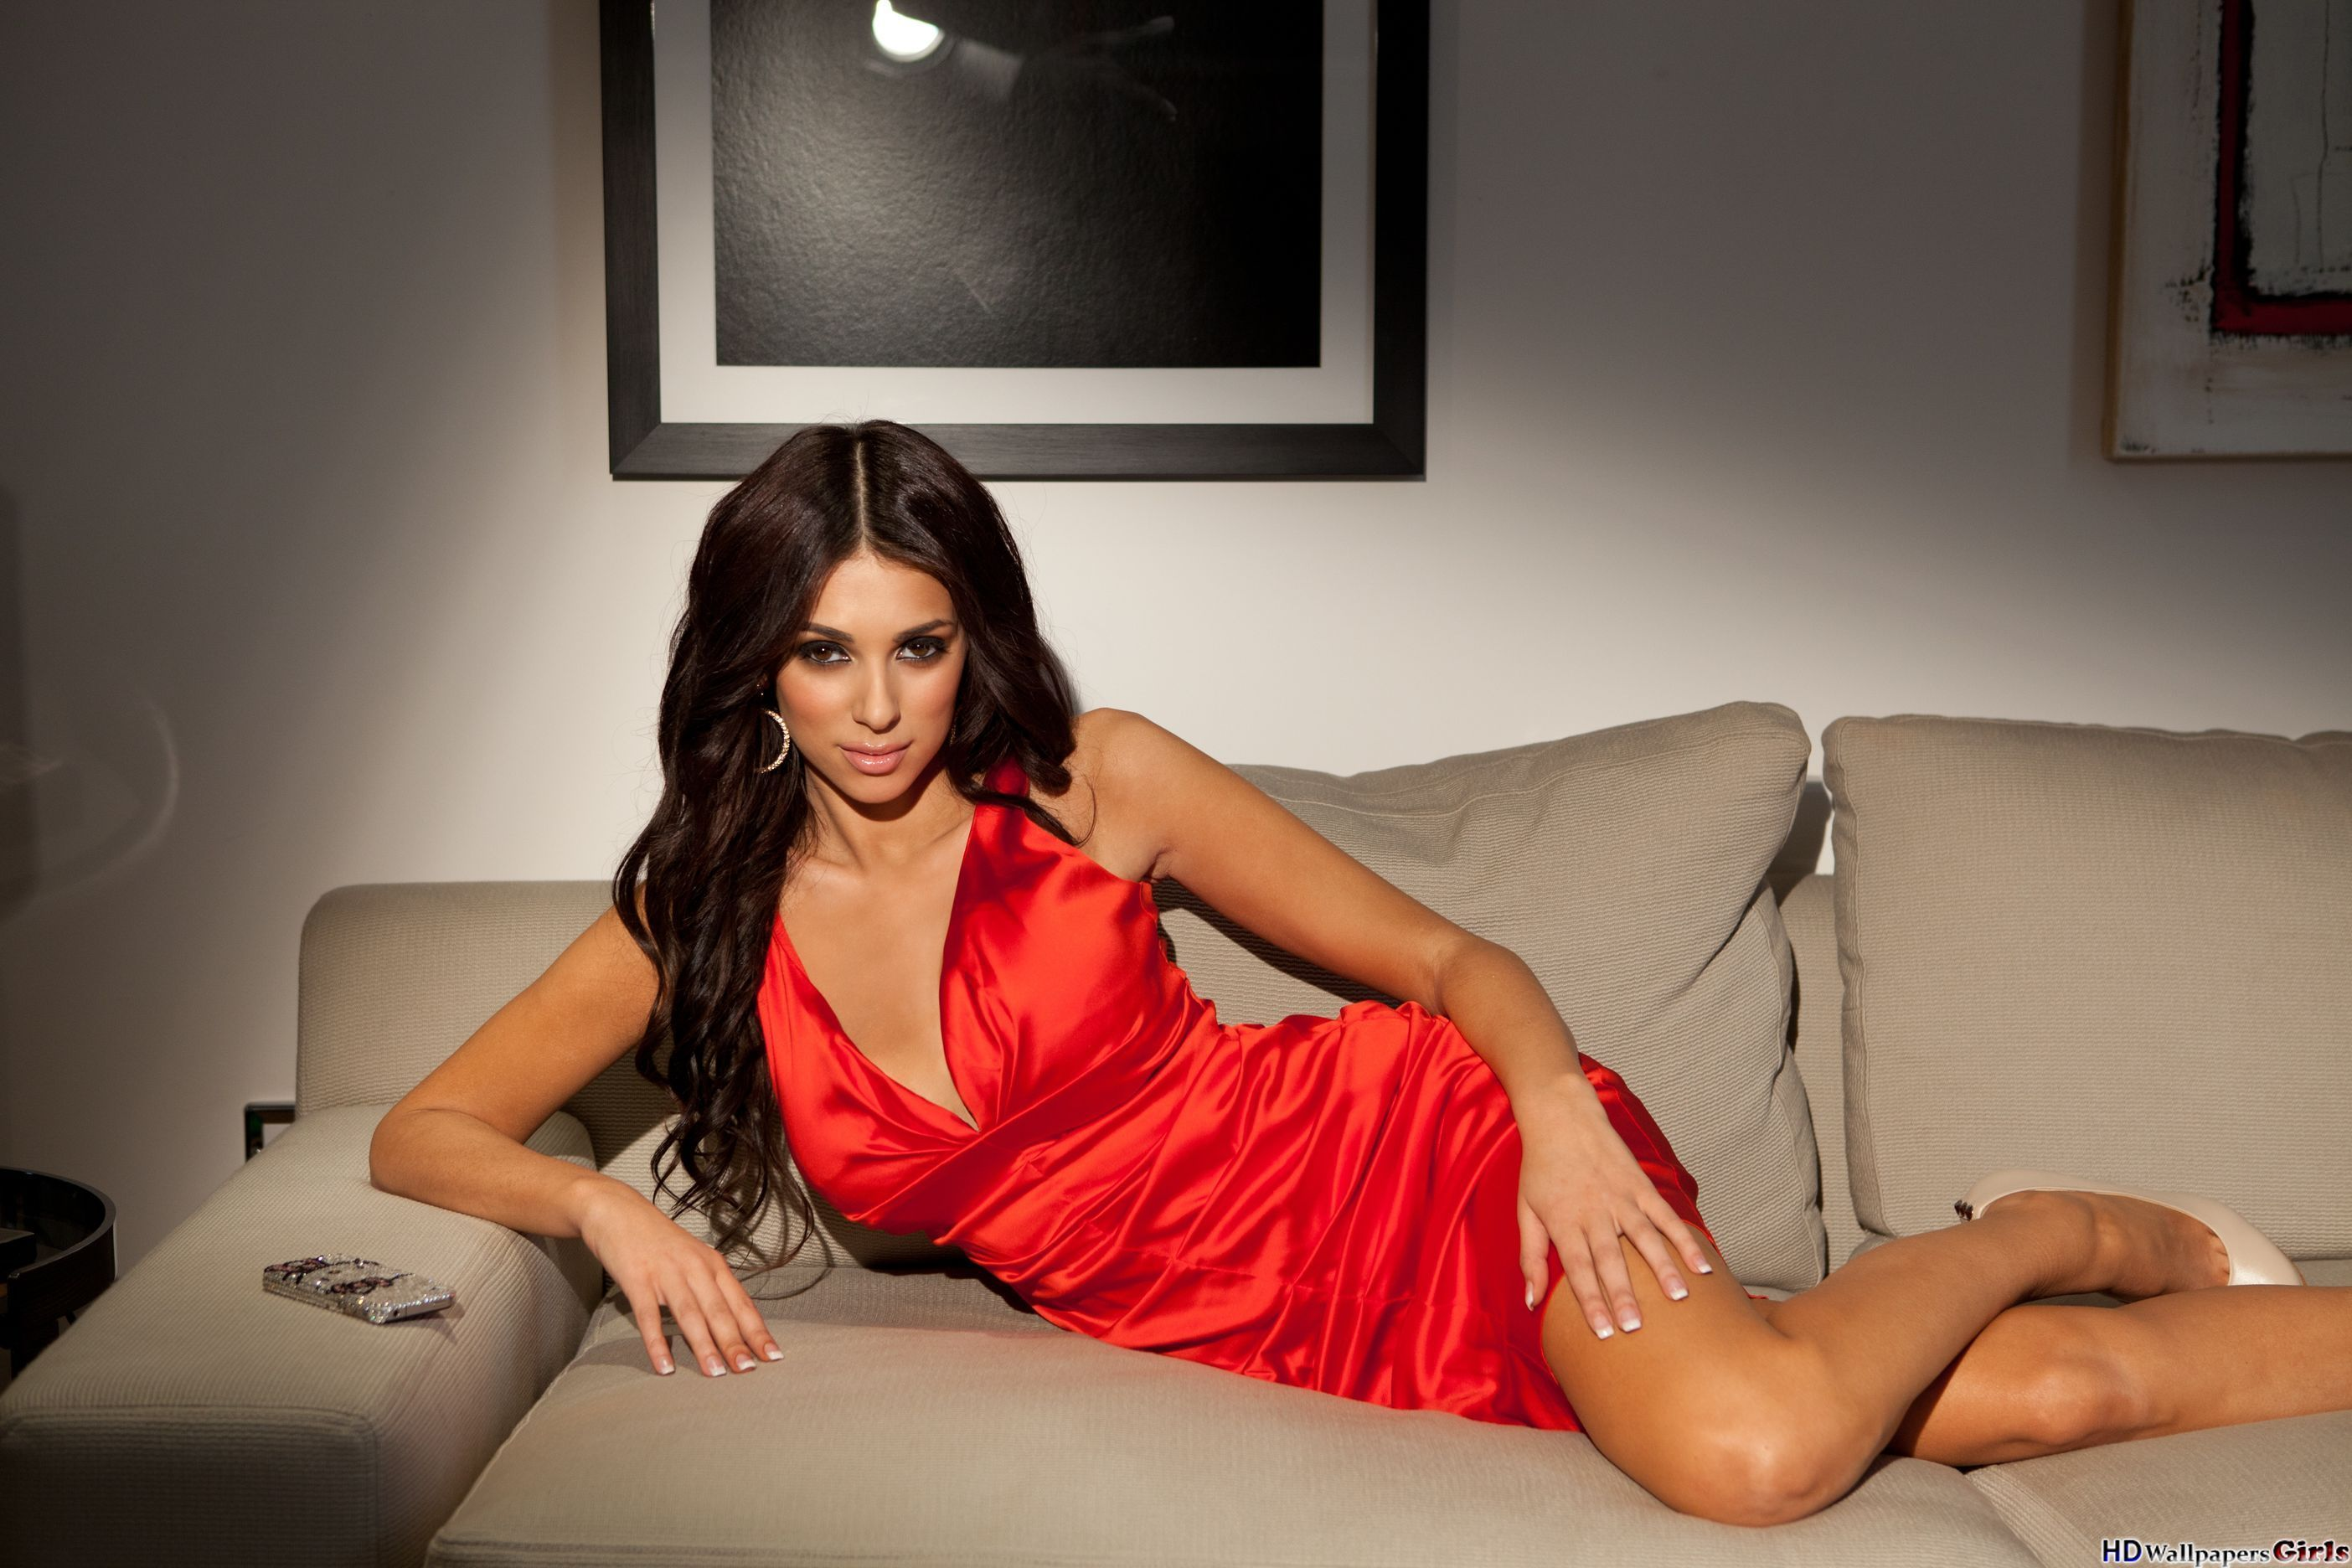 2240x1400 windows wallpaper georgia salpa ? Download Awesome ...